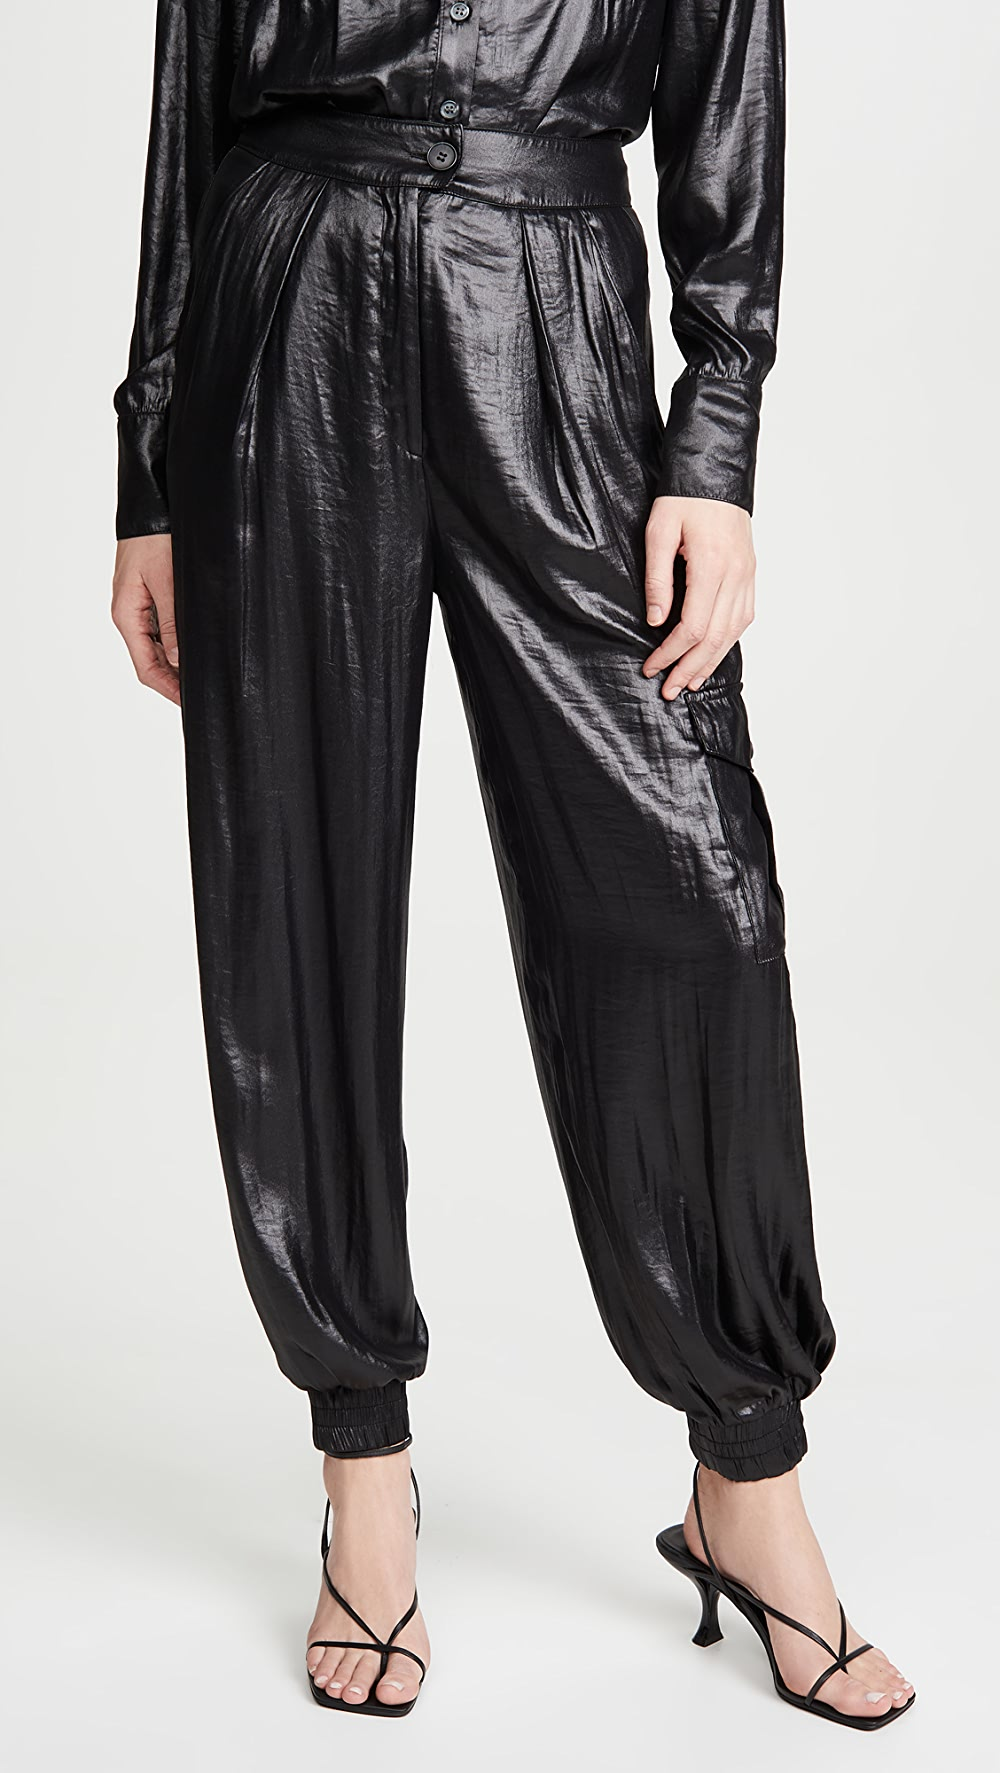 Search For Flights The Range - Lucid Satin Cargo Joggers Structural Disabilities